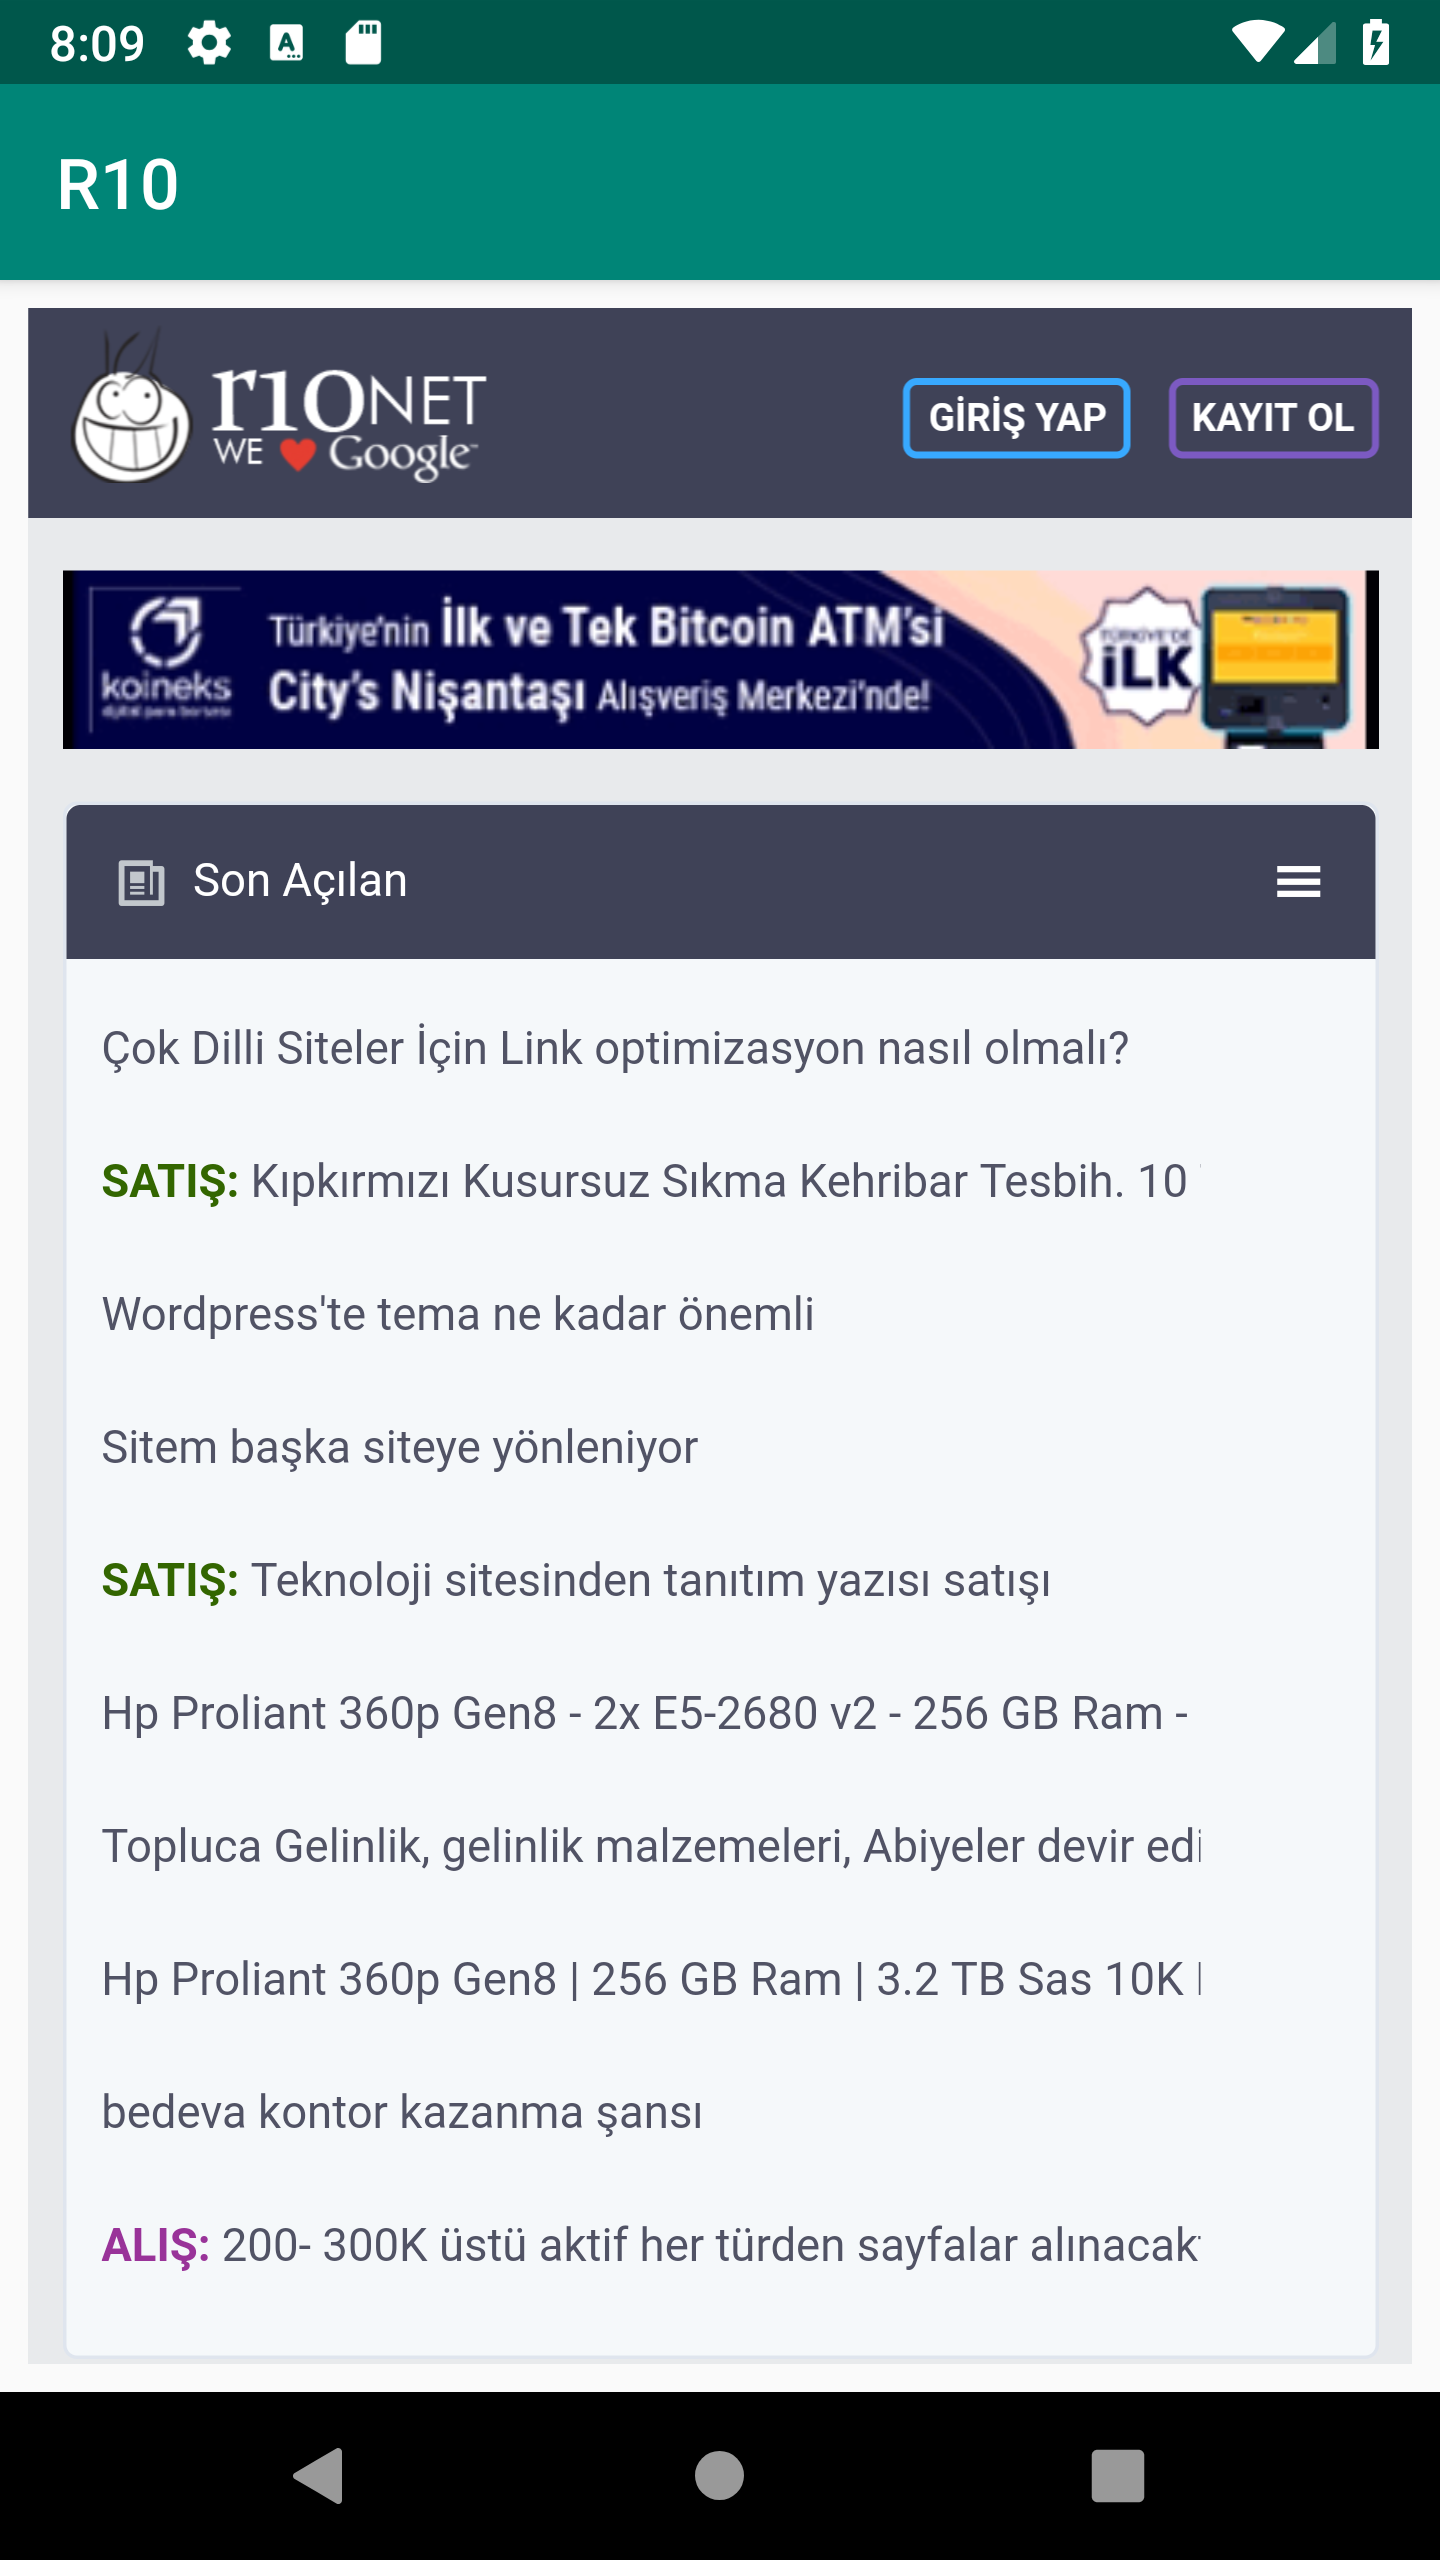 r10.net android webview